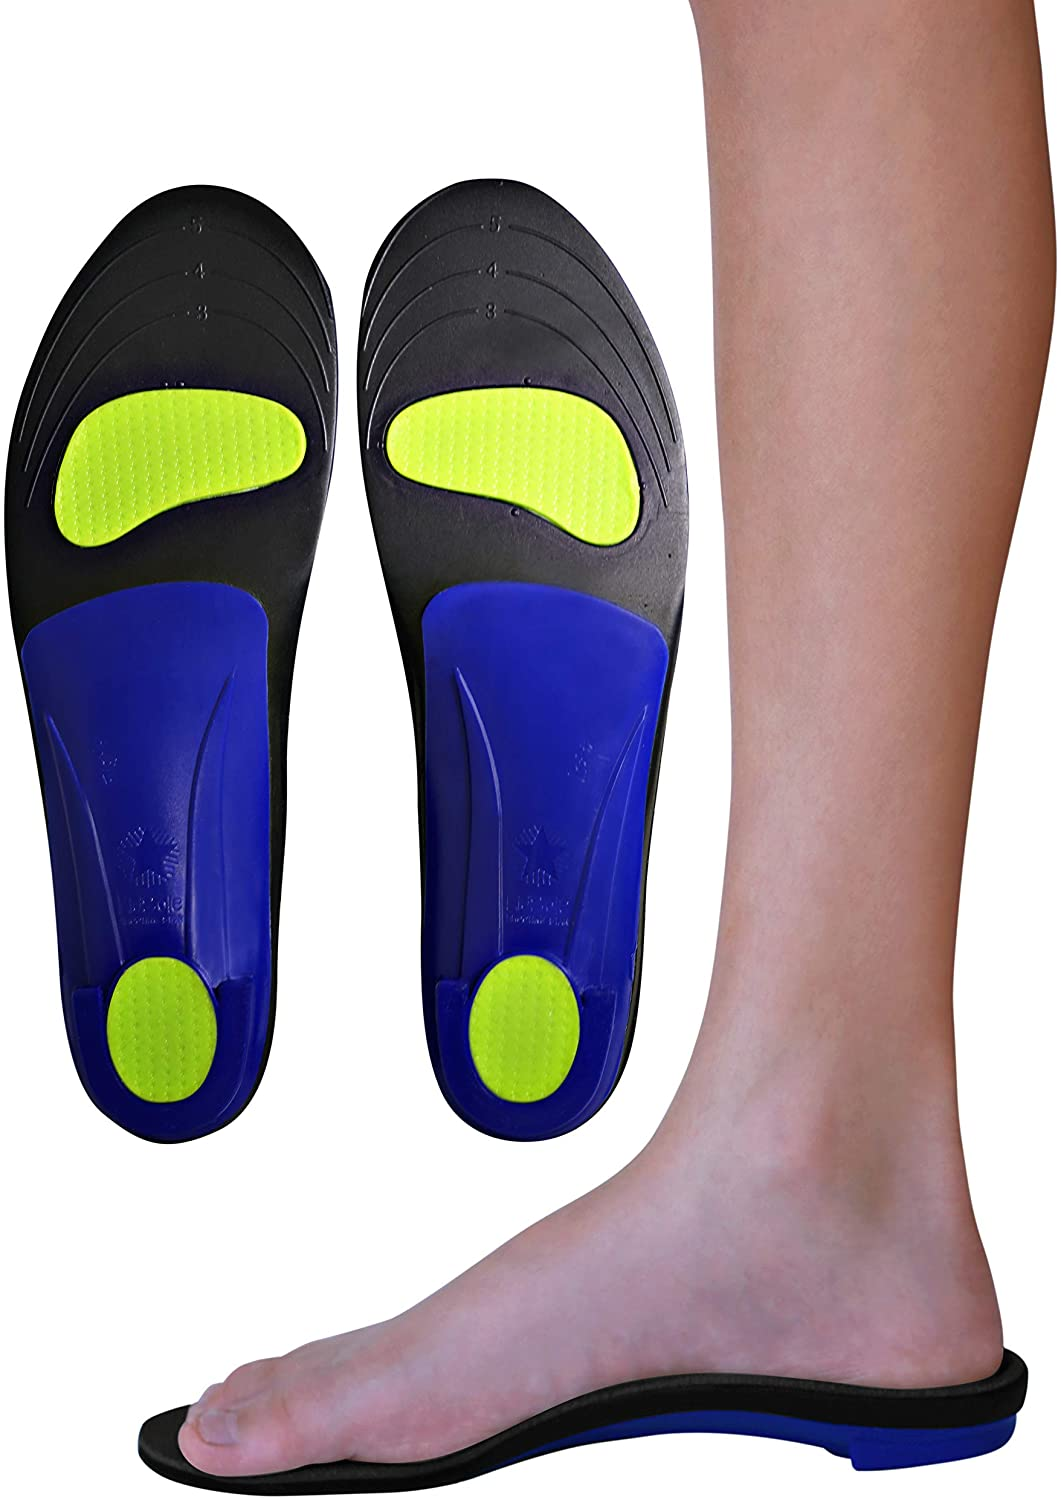 KidSole Shooting Star: Arch Support Posture Correcting Insole. Slim & Lightweight Design with Memory Foam Top. ((24 cm) Kids Size 3-6)